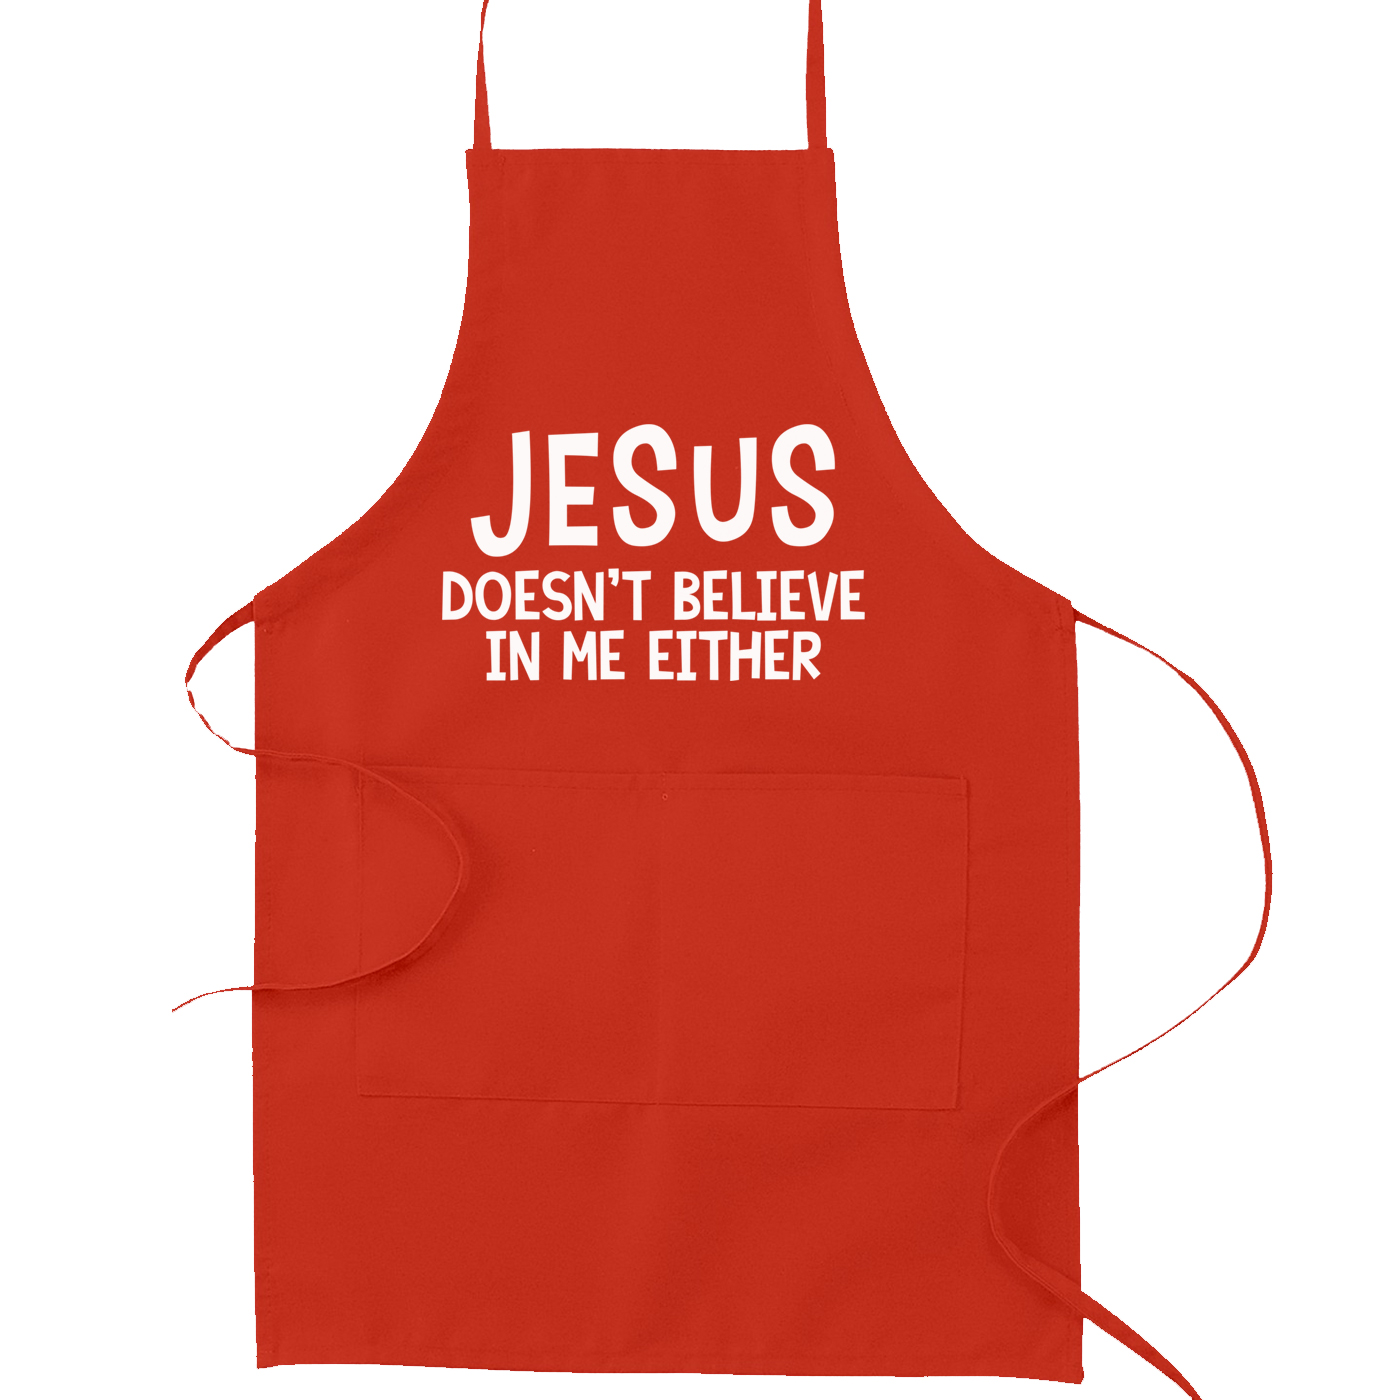 Jesus Doesn't Believe in Me Either Atheist Kitchen Apron